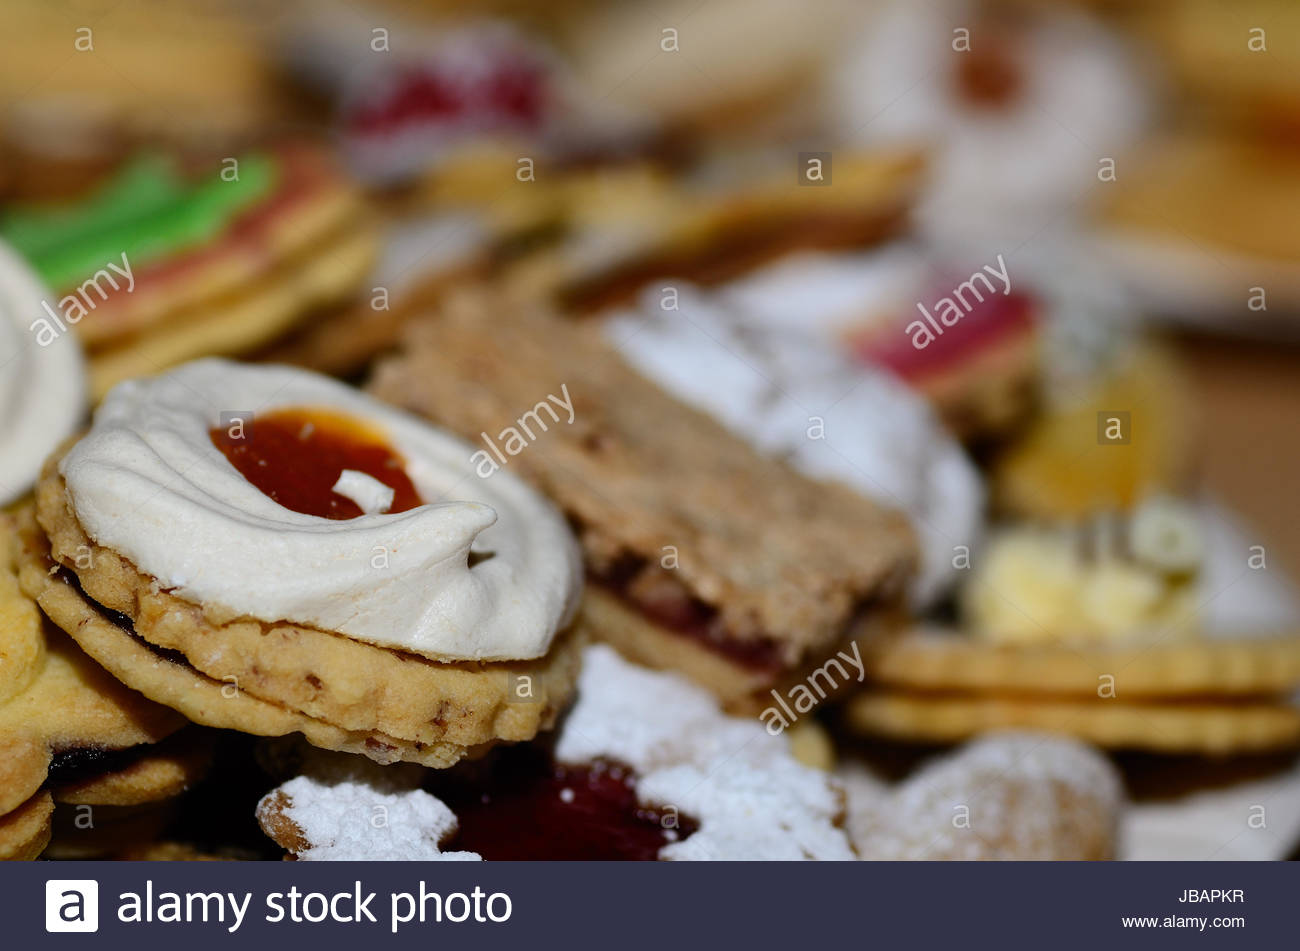 Weihnachtskekse 2019.Oma Stock Photos Oma Stock Images Page 23 Alamy